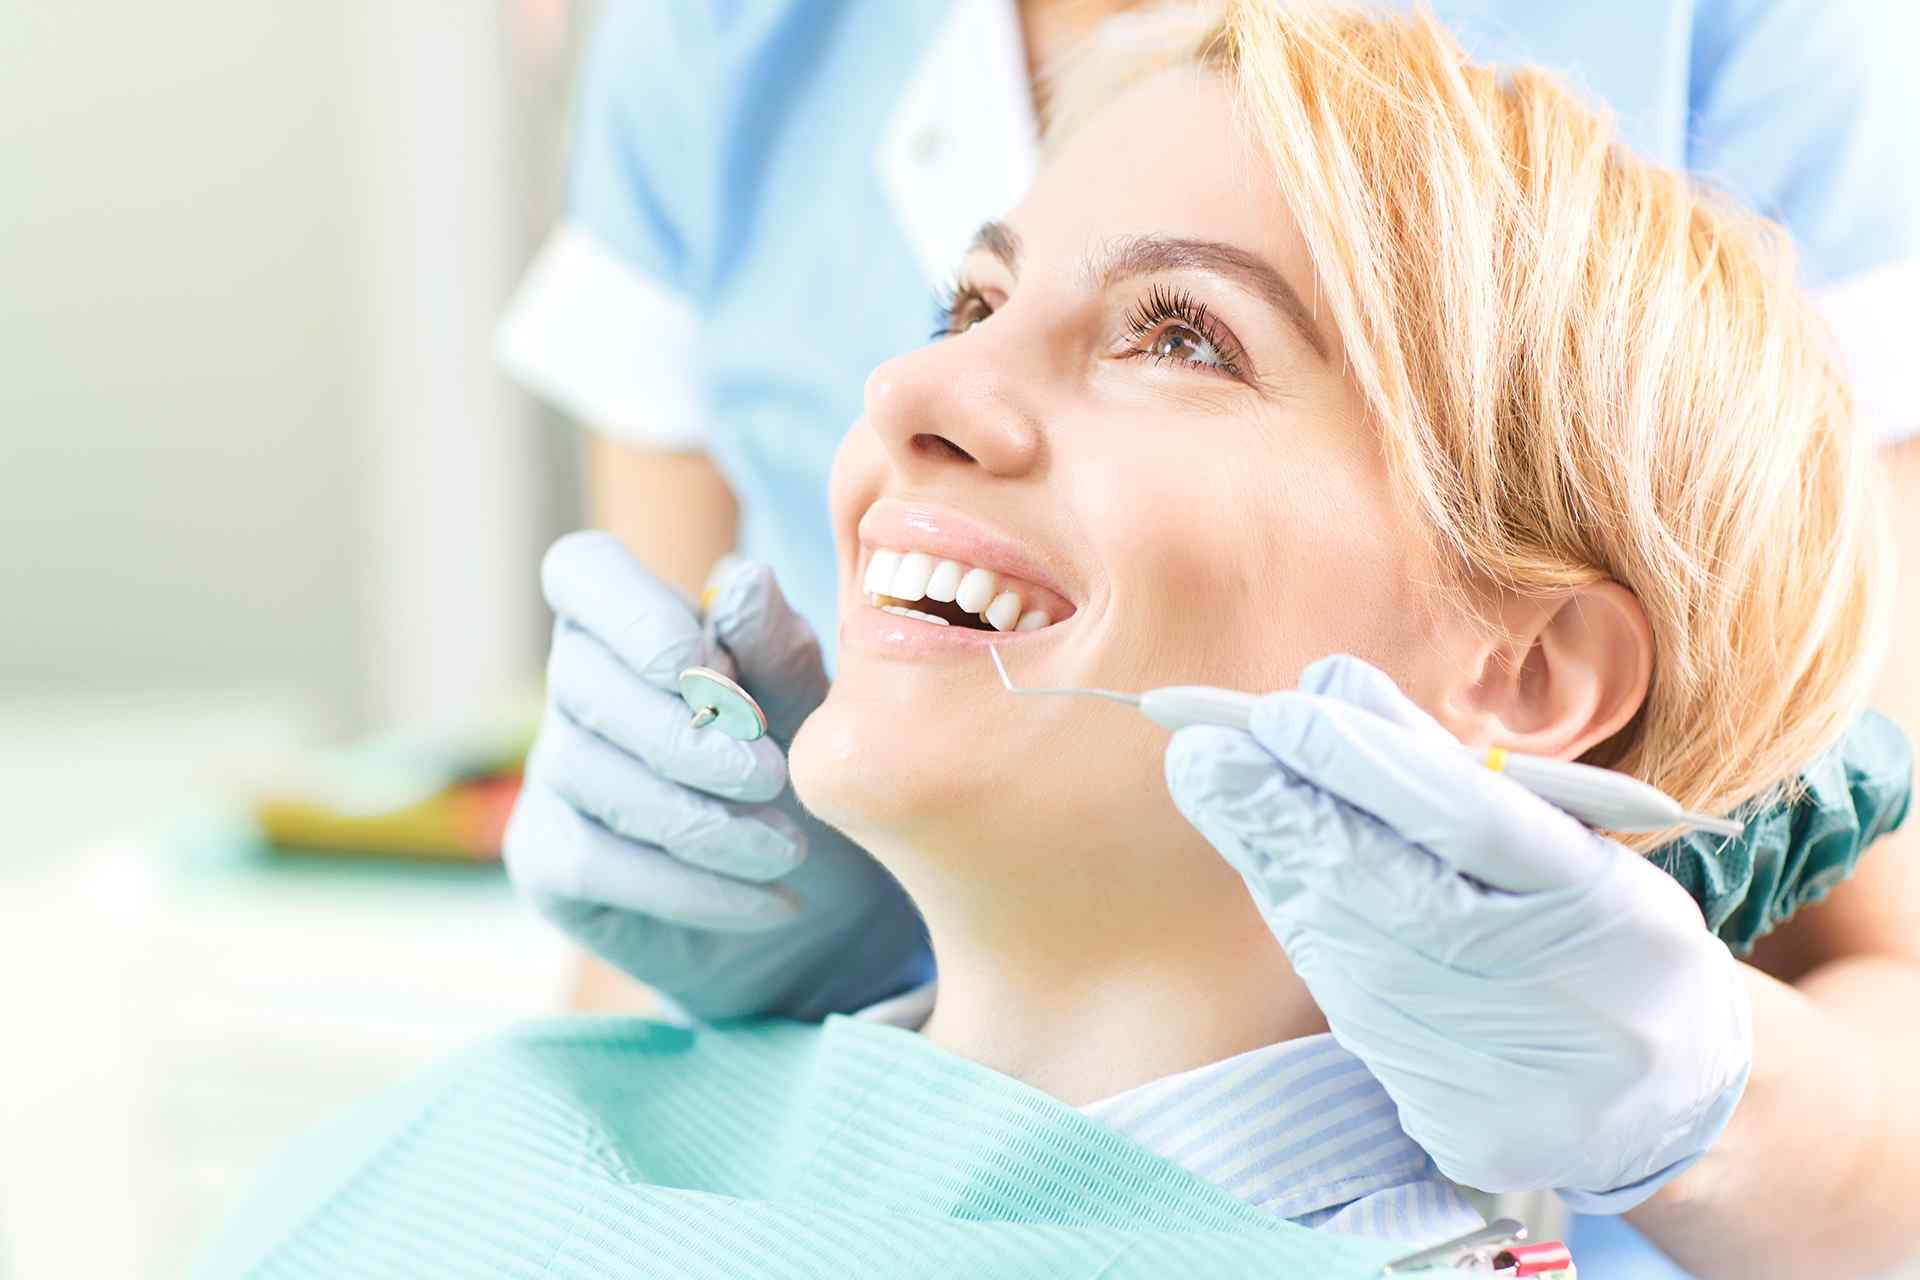 Woman smiling during a teeth cleaning